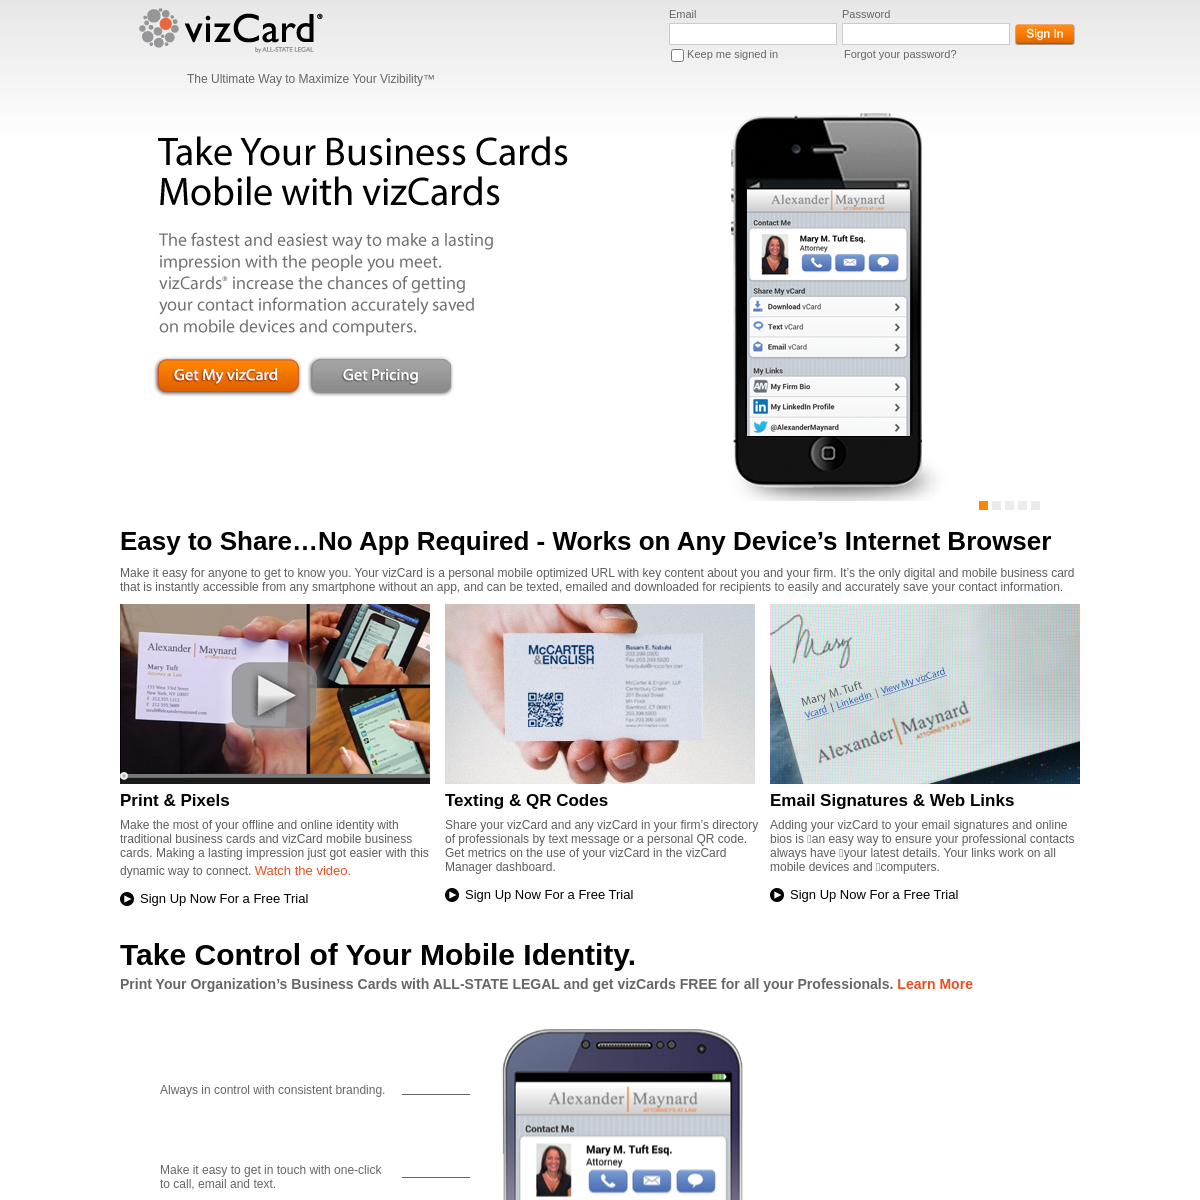 vizCard A Mobile Business Card That Makes A Lasting First Impression